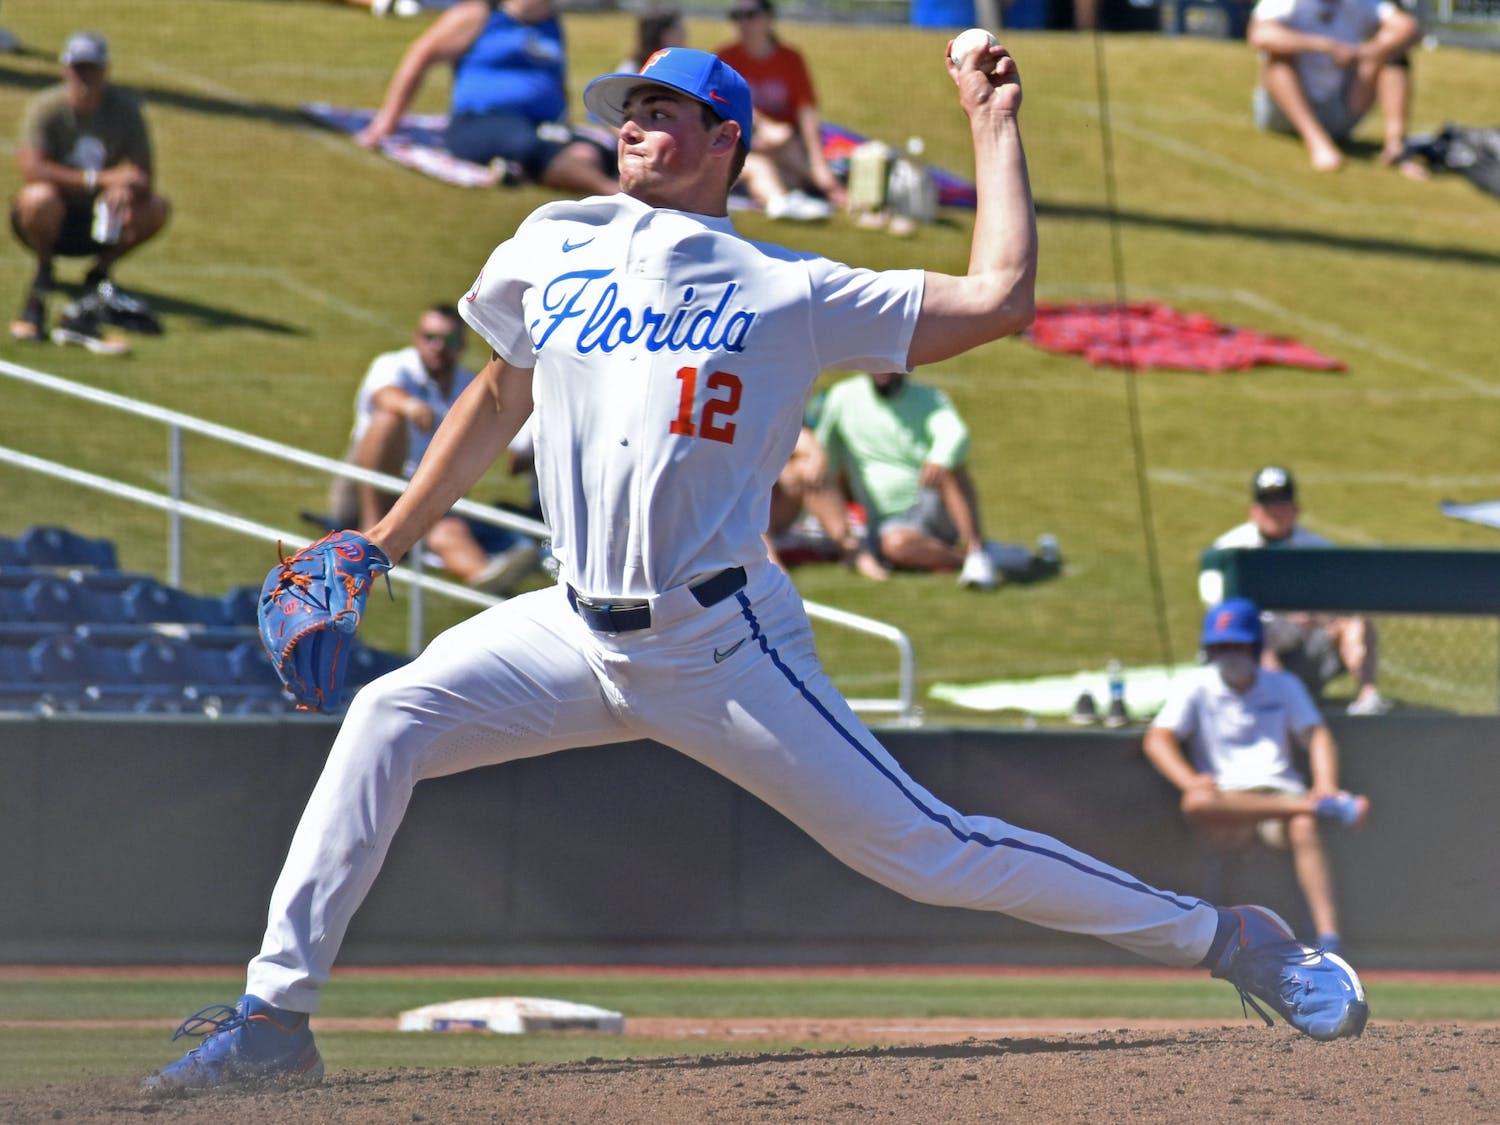 Freshman Hunter Barco throws a pitch against Jacksonville on March 14. The southpaw struck out seven batters in 5.1 innings against Vanderbilt Sunday.